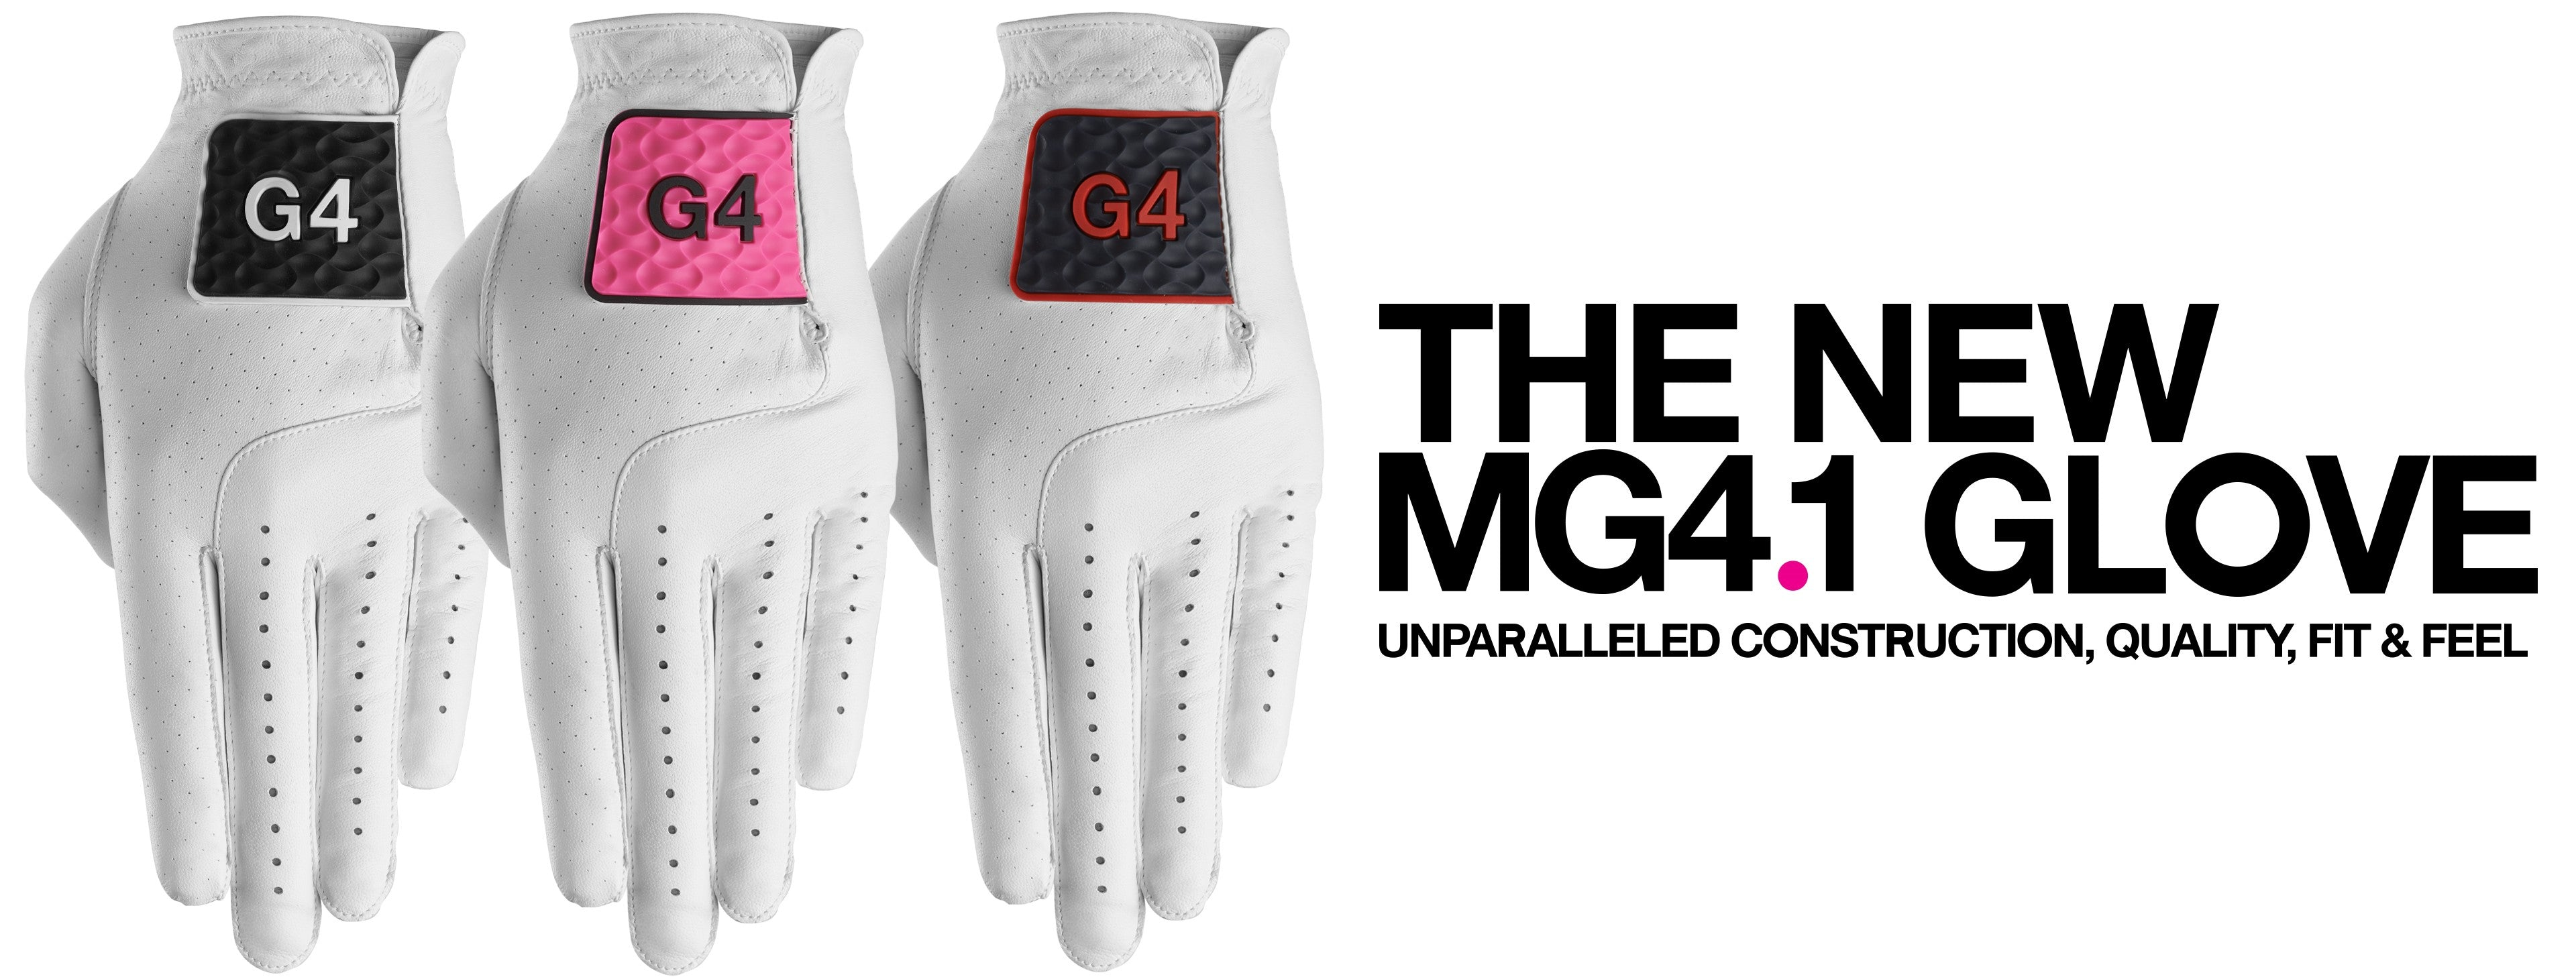 GFORE - Colored, Cabretta Leather Golf Gloves – G/Fore